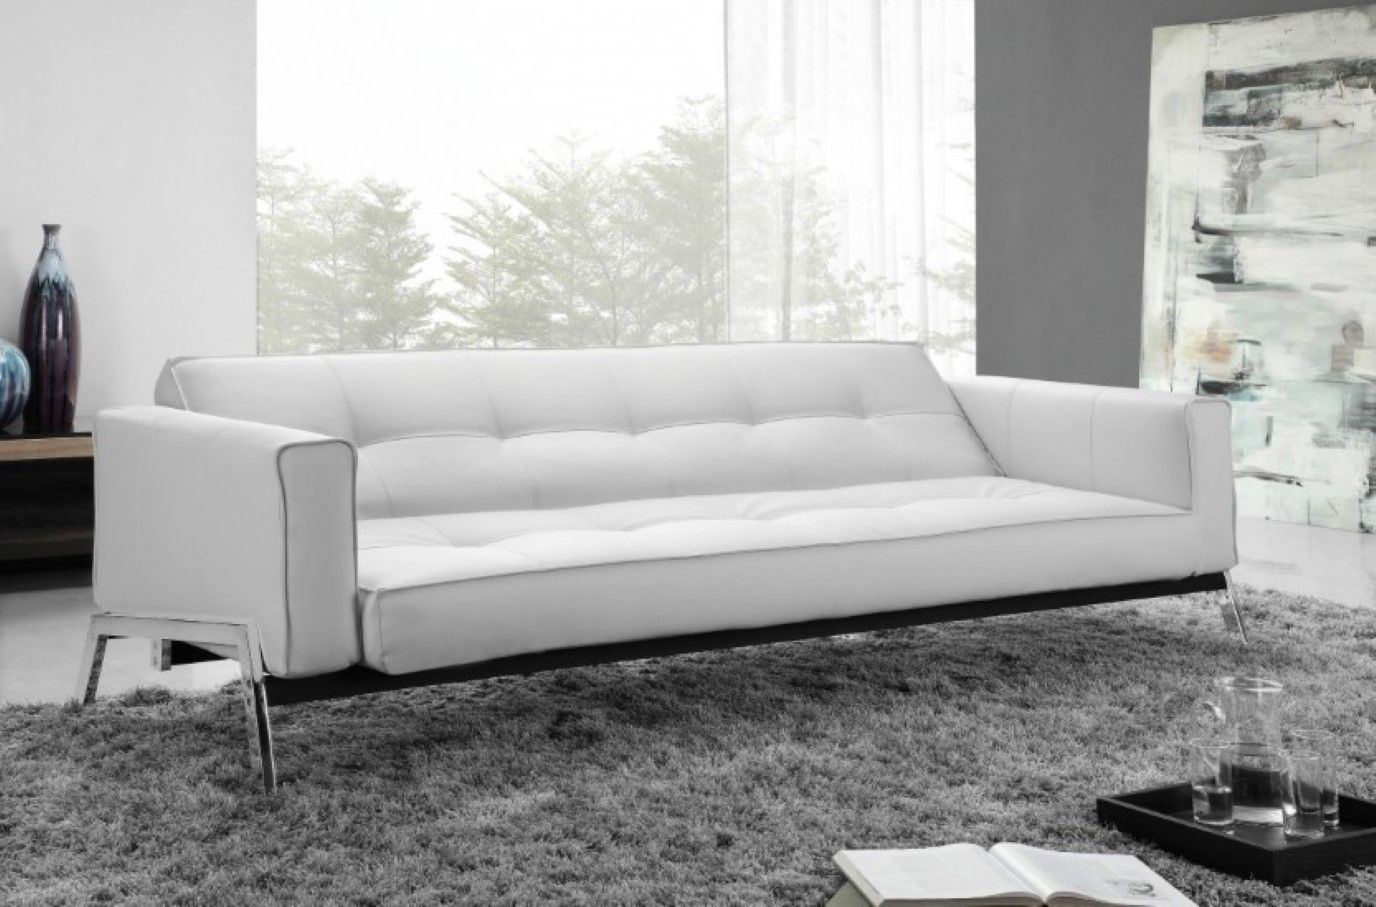 Cool Modern White Sofa Good Modern White Sofa 16 About Remodel Sofa Room Ideas With Modern White So Modern Sofa Bed Contemporary Sofa Bed White Leather Sofas